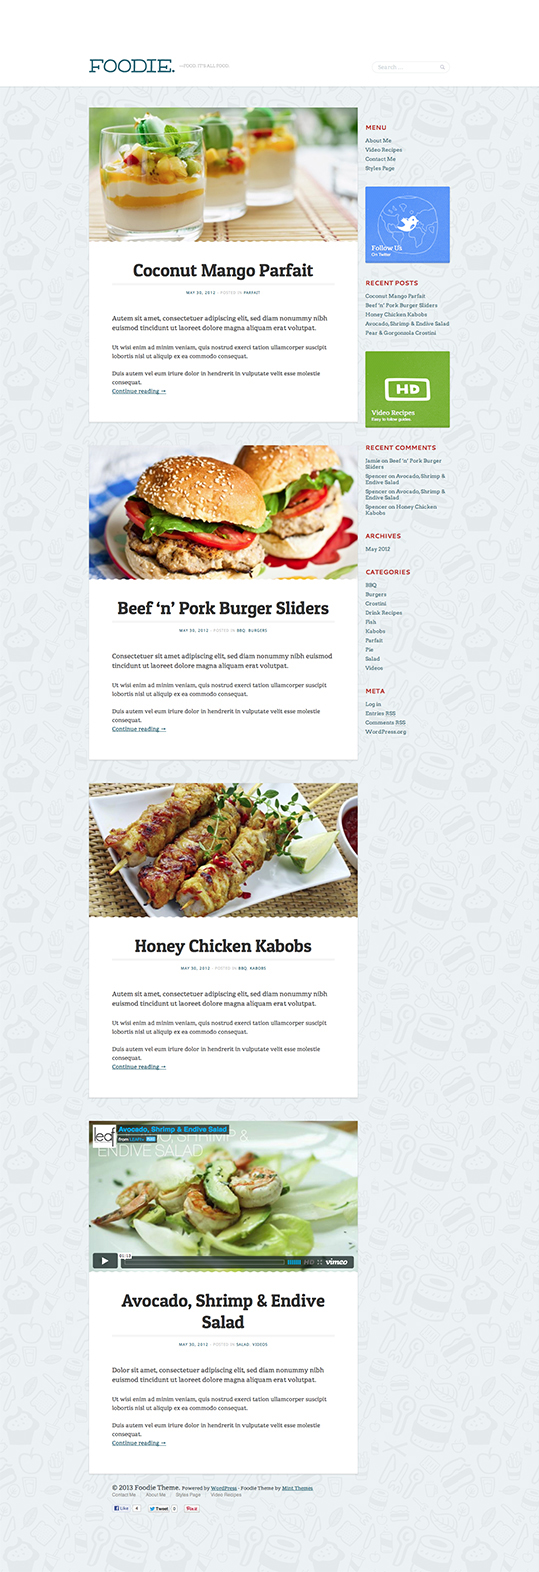 Foodie - A Whimsical Food Blogging Theme - 5